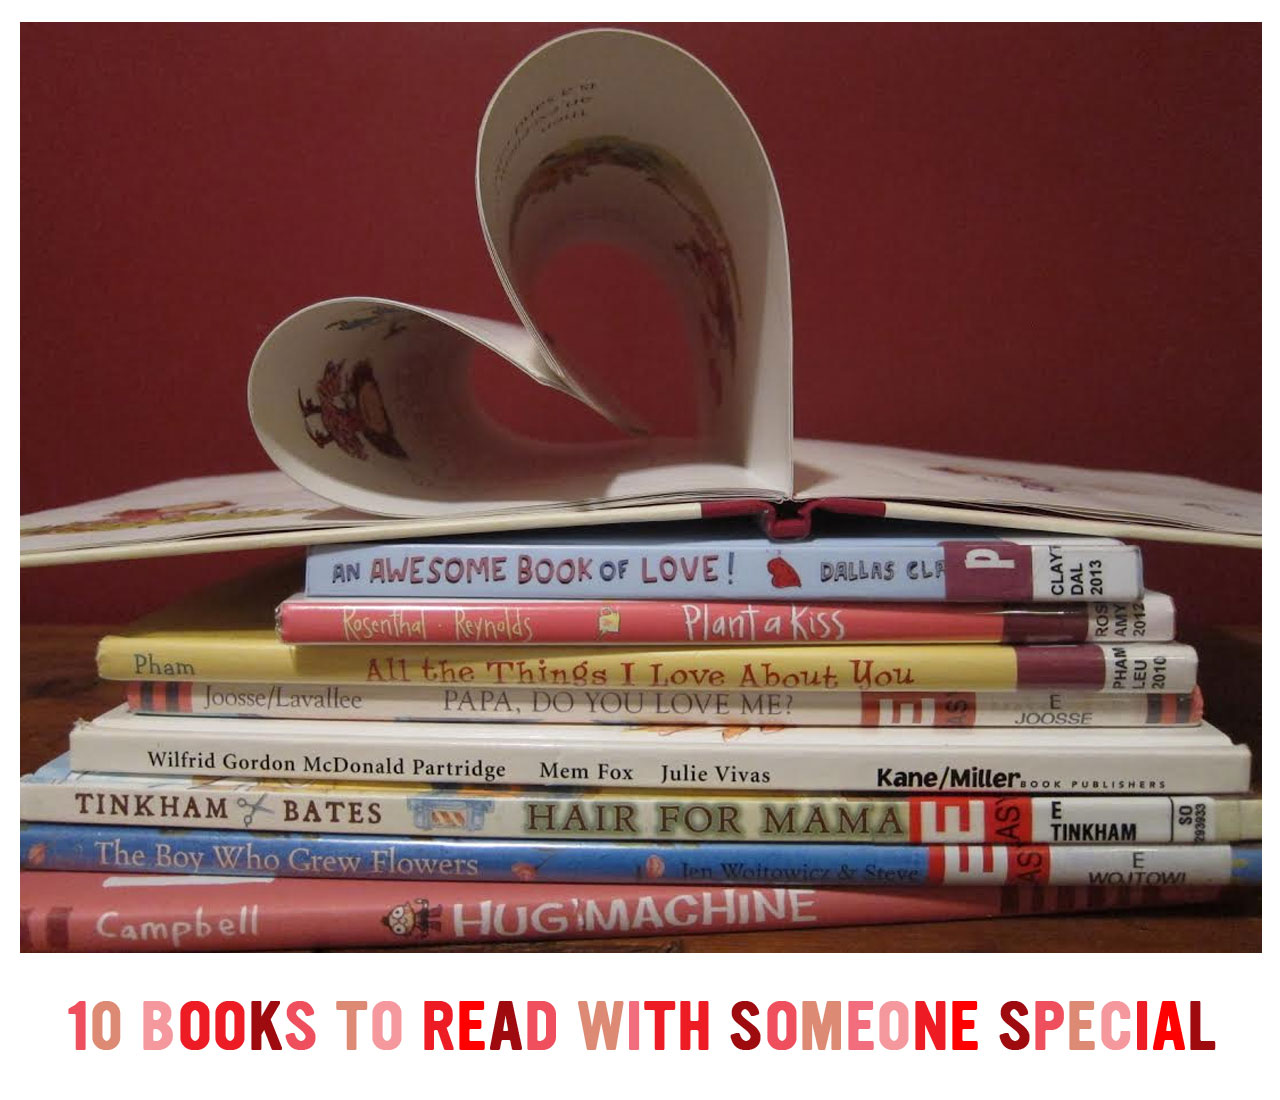 10 Books to Read with Someone Special